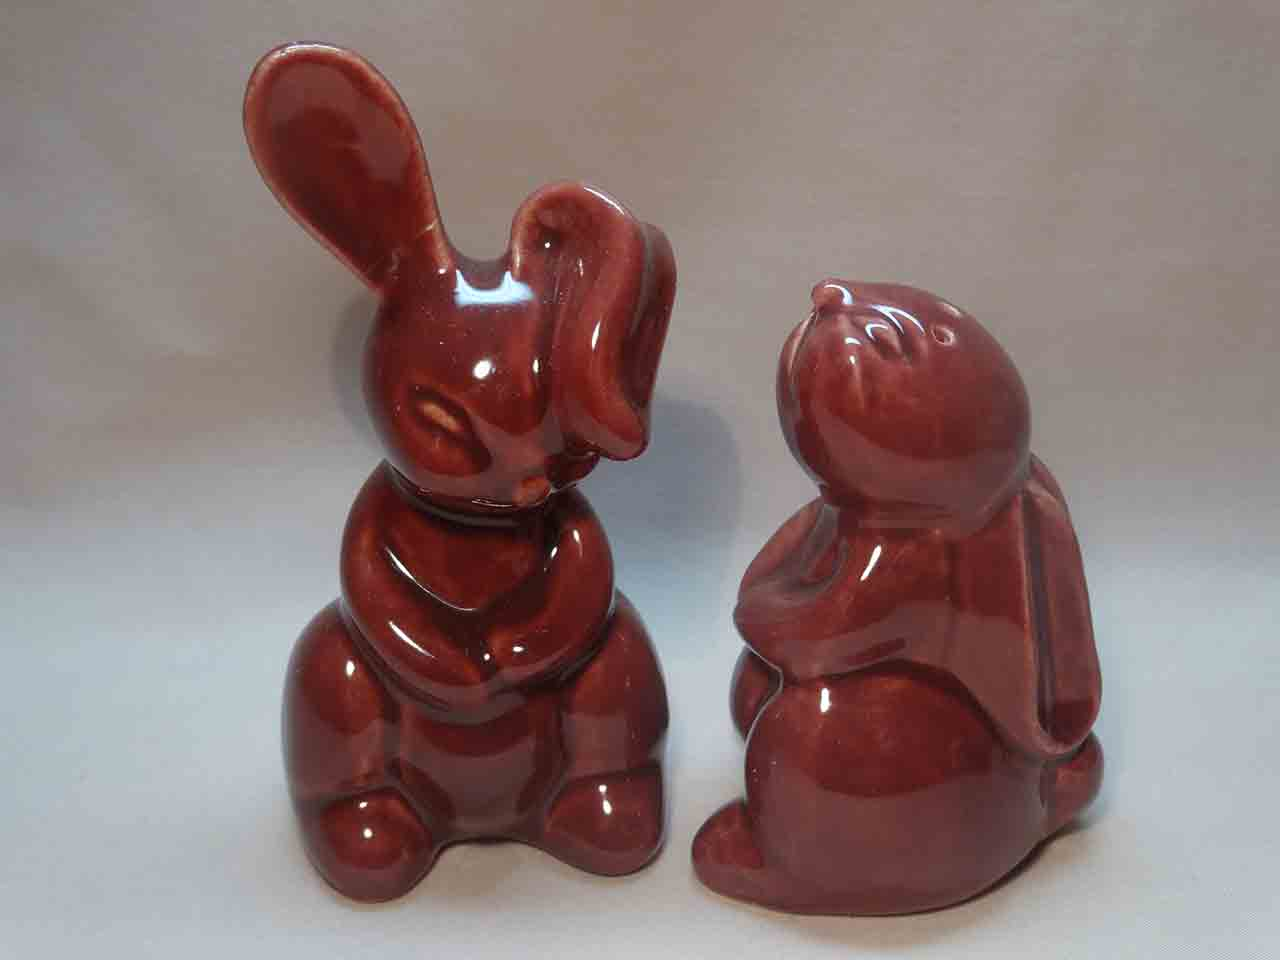 Pacific Pottery salt and pepper shakers - rabbits